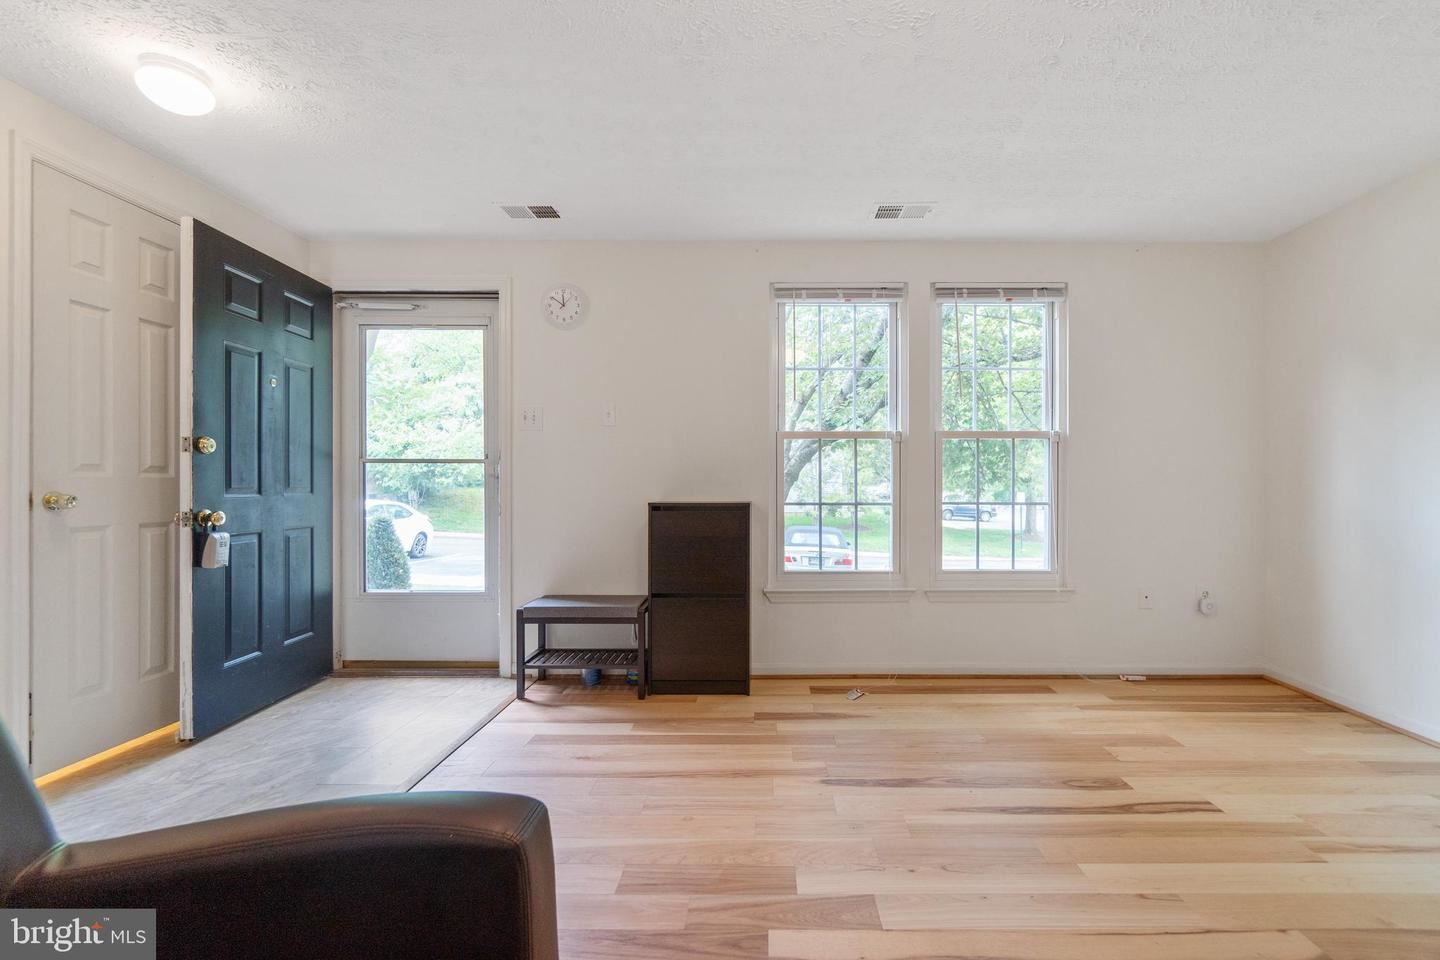 Photo of 14007 TEANECK TER, NORTH POTOMAC, MD 20878 (MLS # MDMC756184)